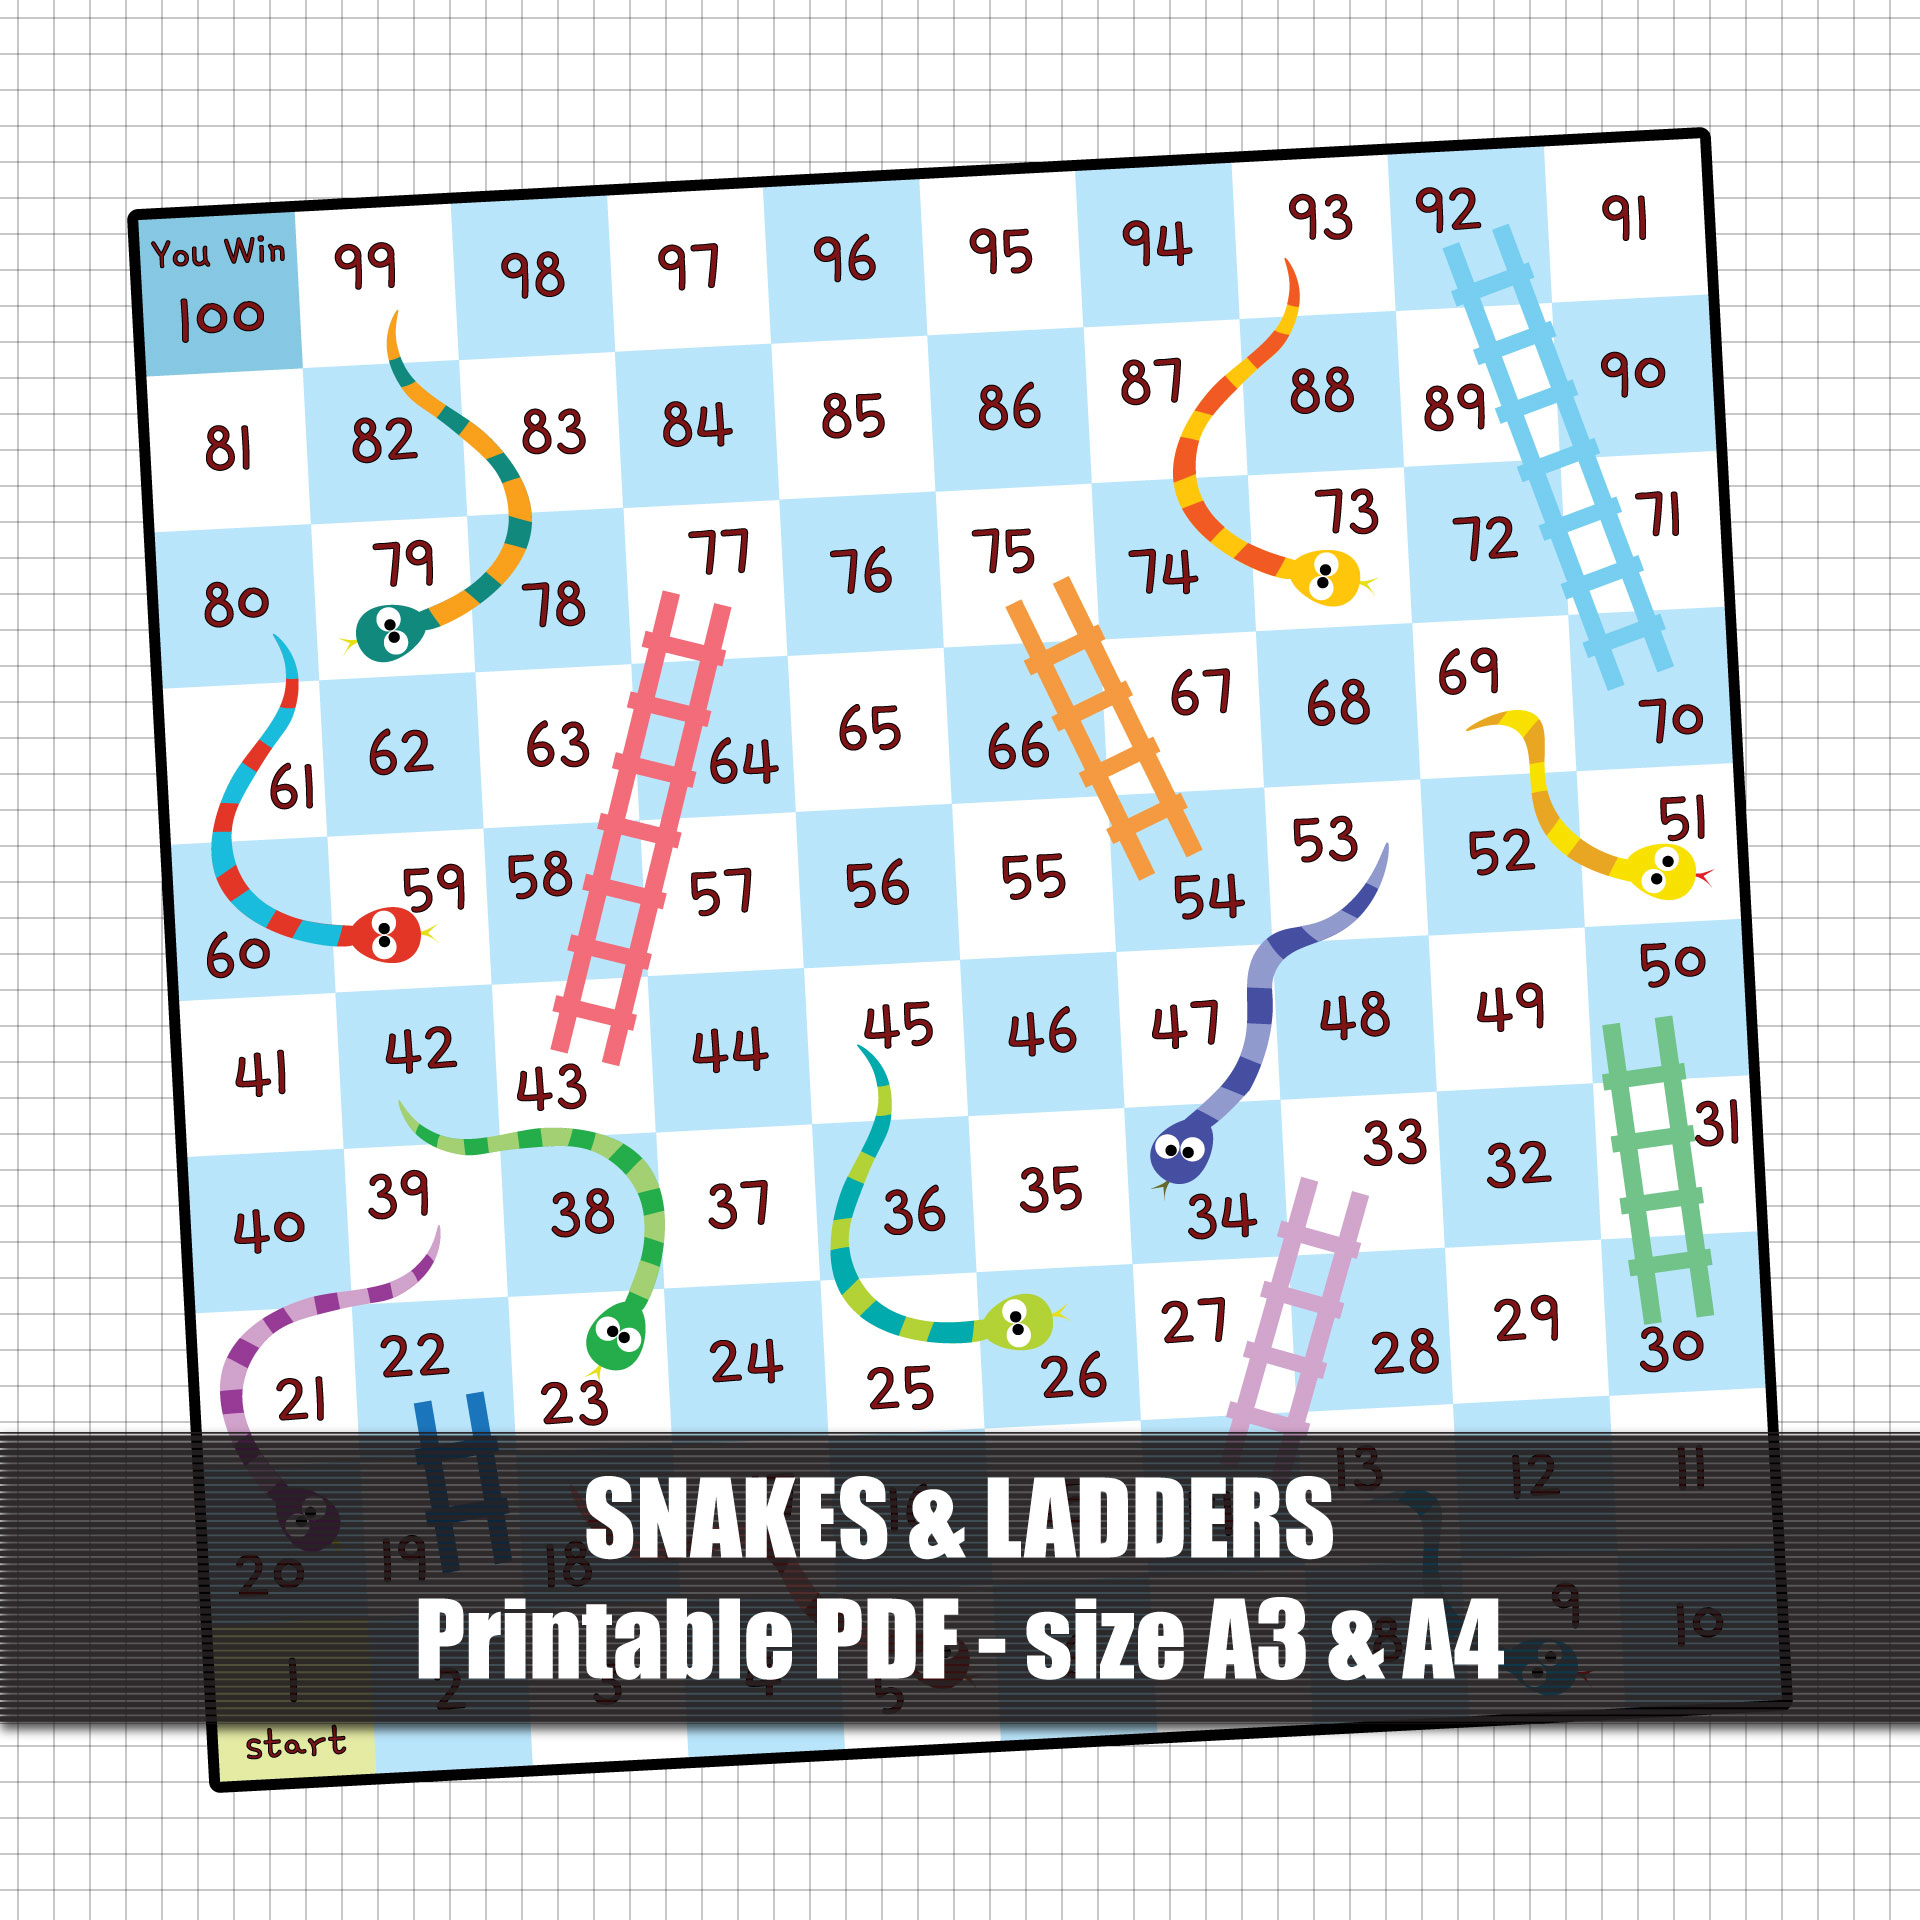 printable-snakes-and-ladders-display-light-blue